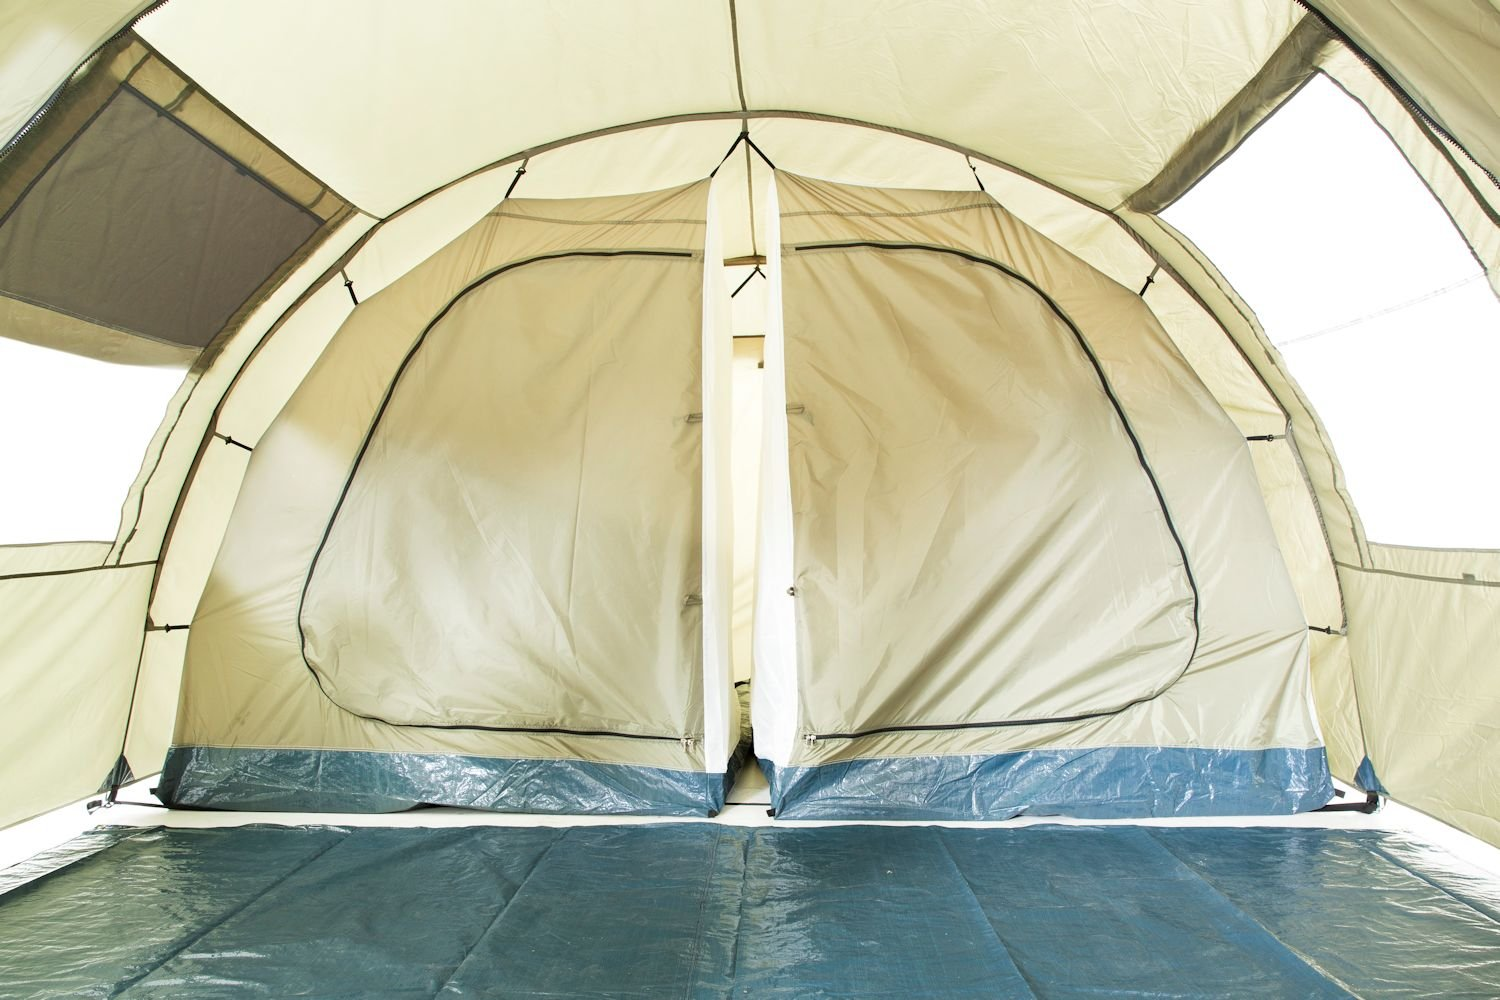 CampFeuer - Tunnel Tent with 2 Sleeping Compartments, Olive-Green, with Groundsheet and Movable Front Wall 7